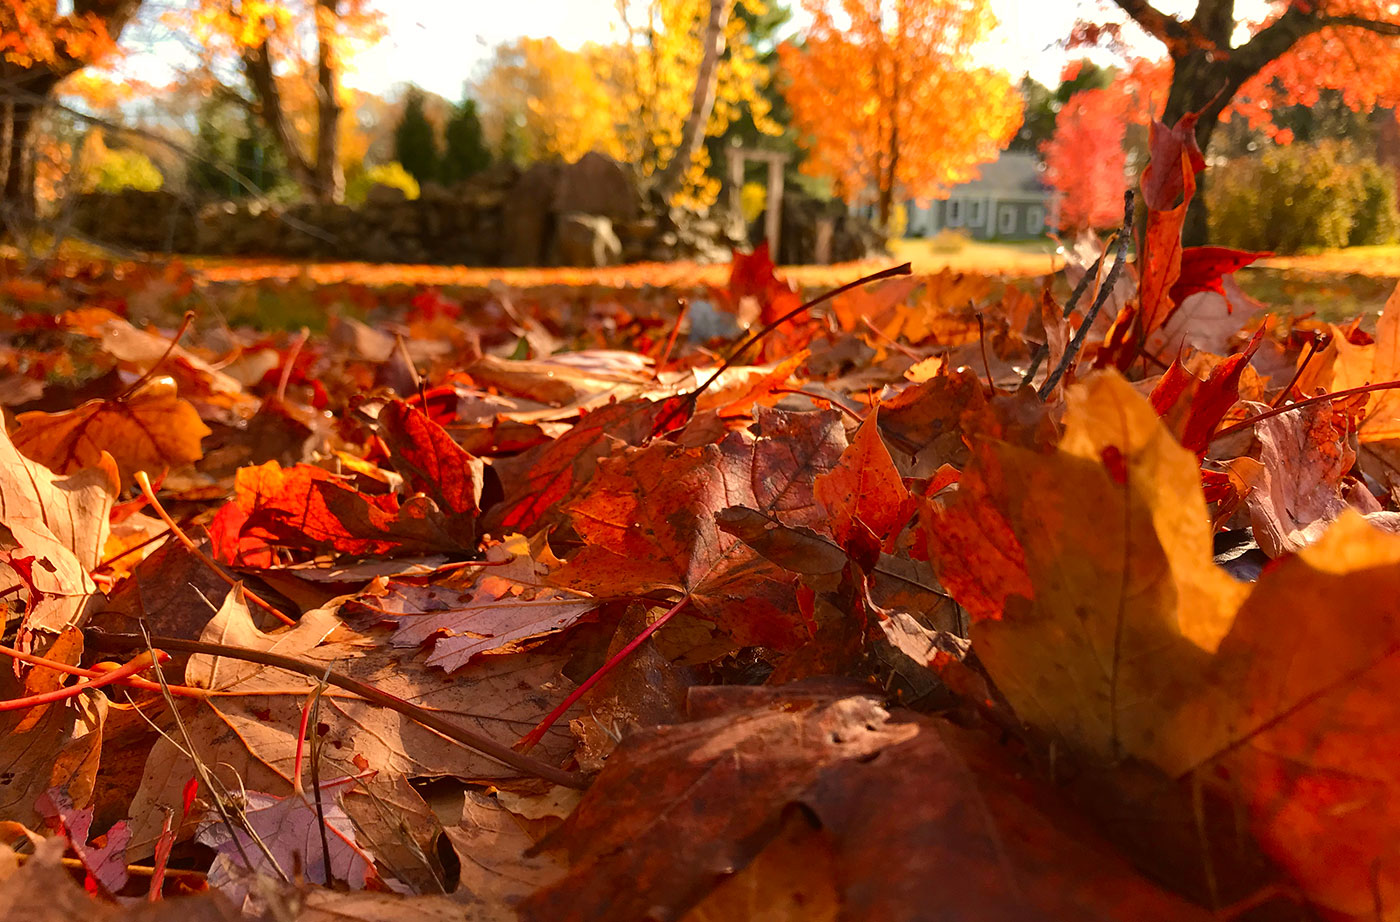 A Leaf in the Pile